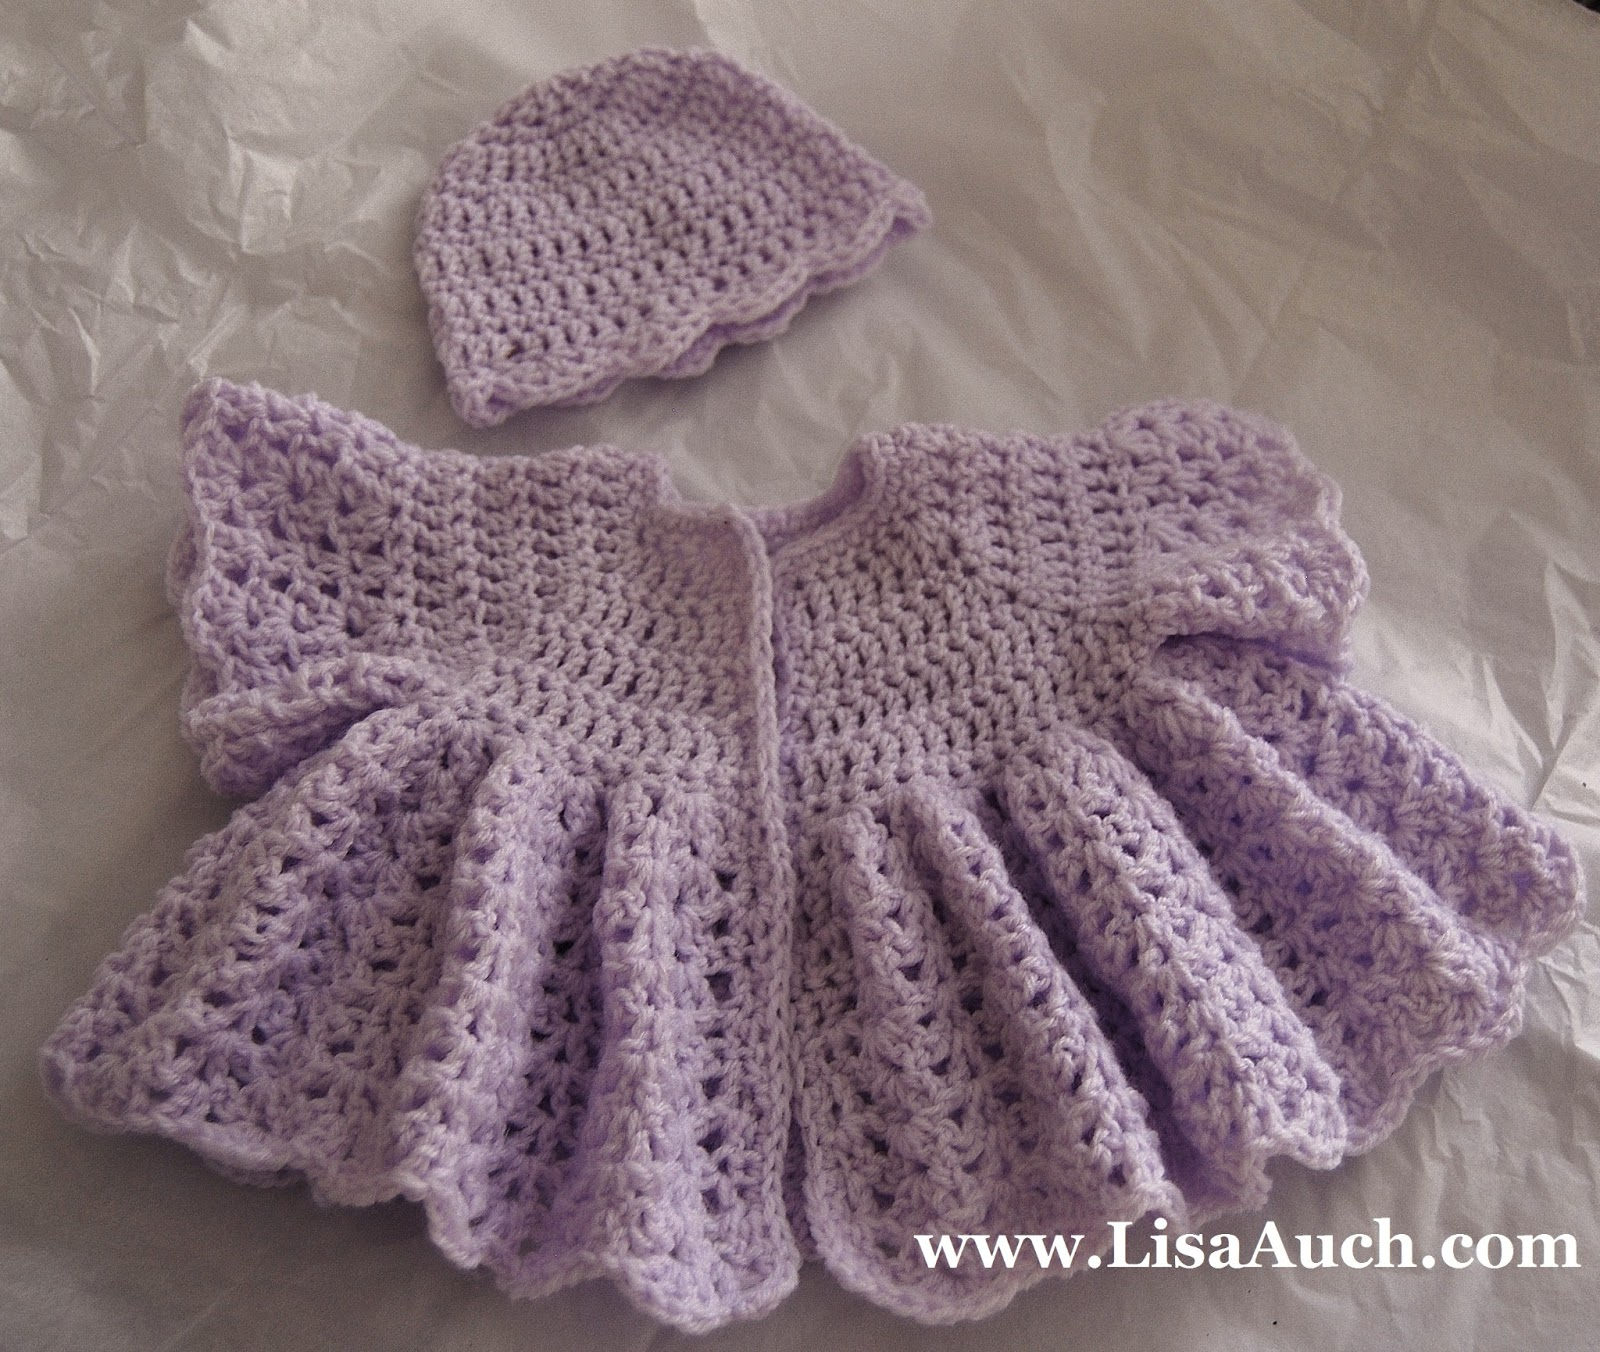 Free Crochet Pattern Beautiful Vintage Swing Baby Cardigan (0-3 ...